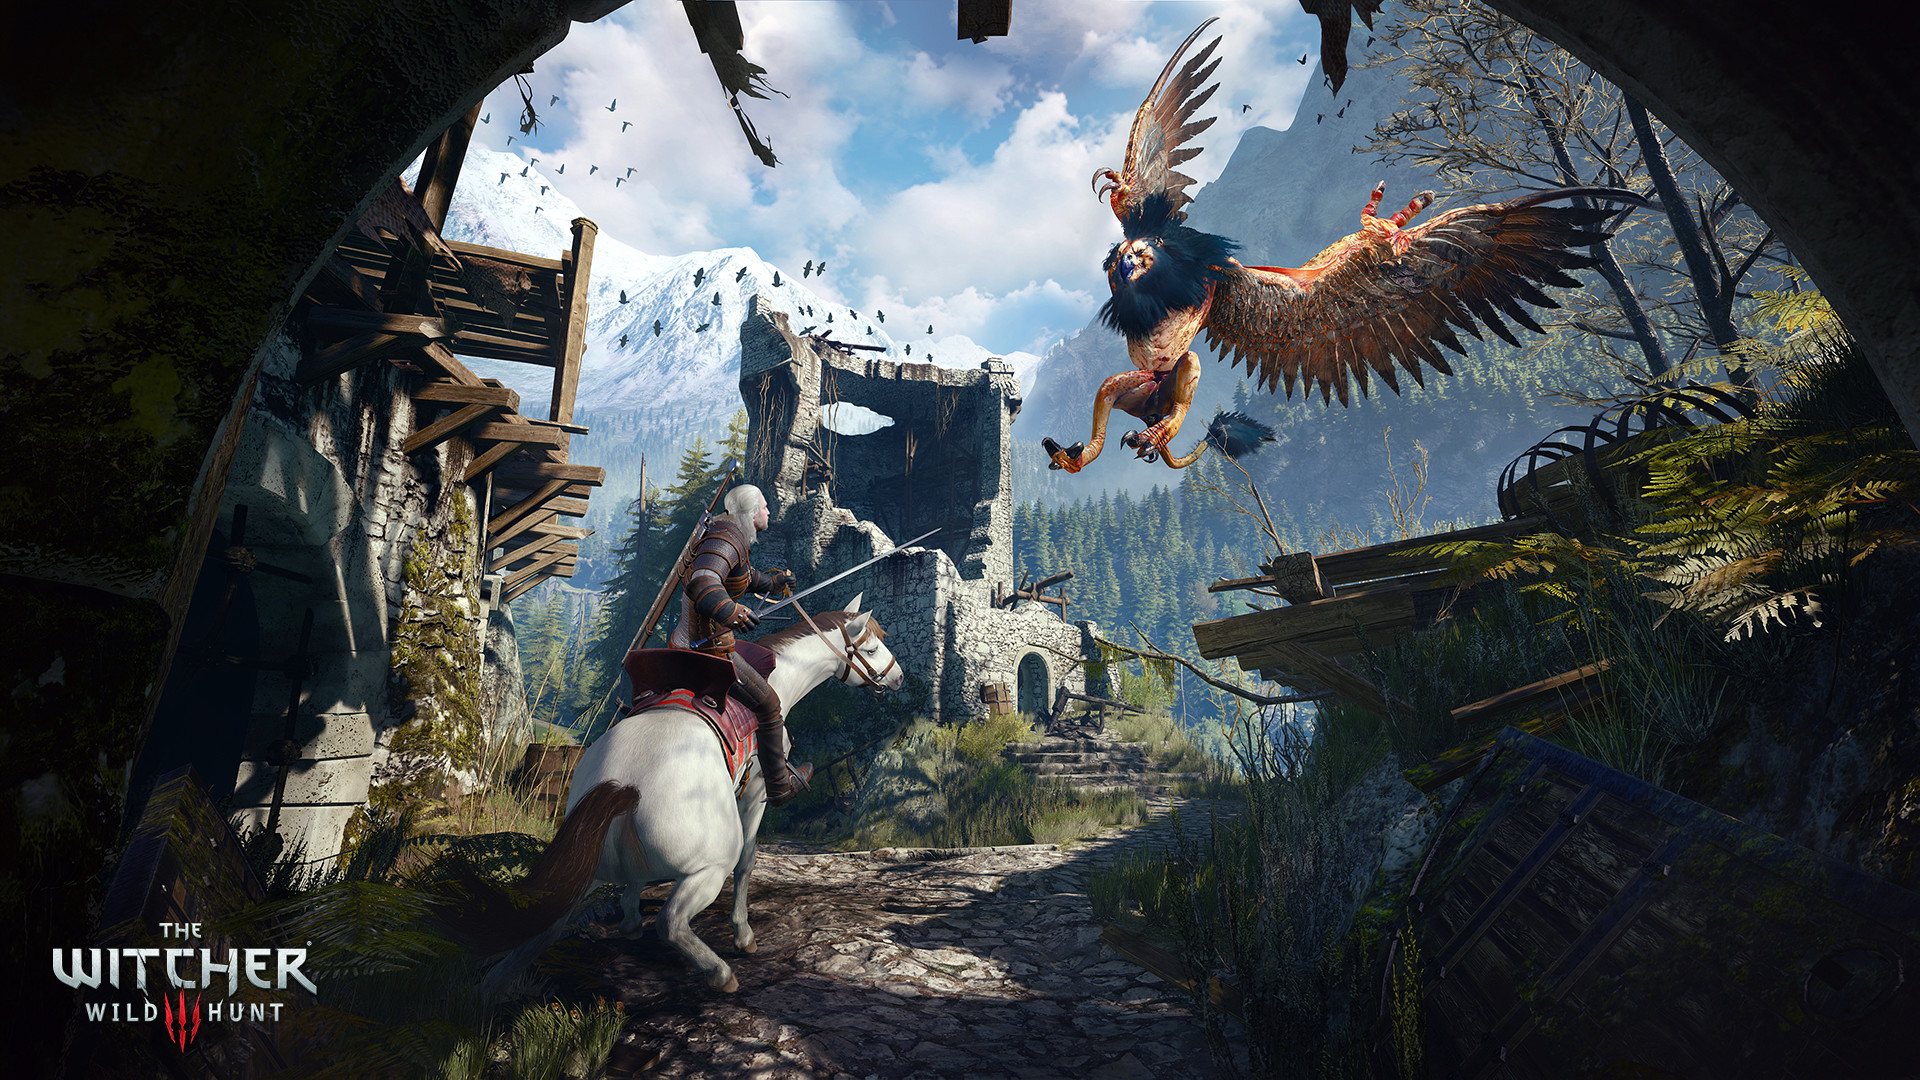 Find the best gaming PC for TW3:WH